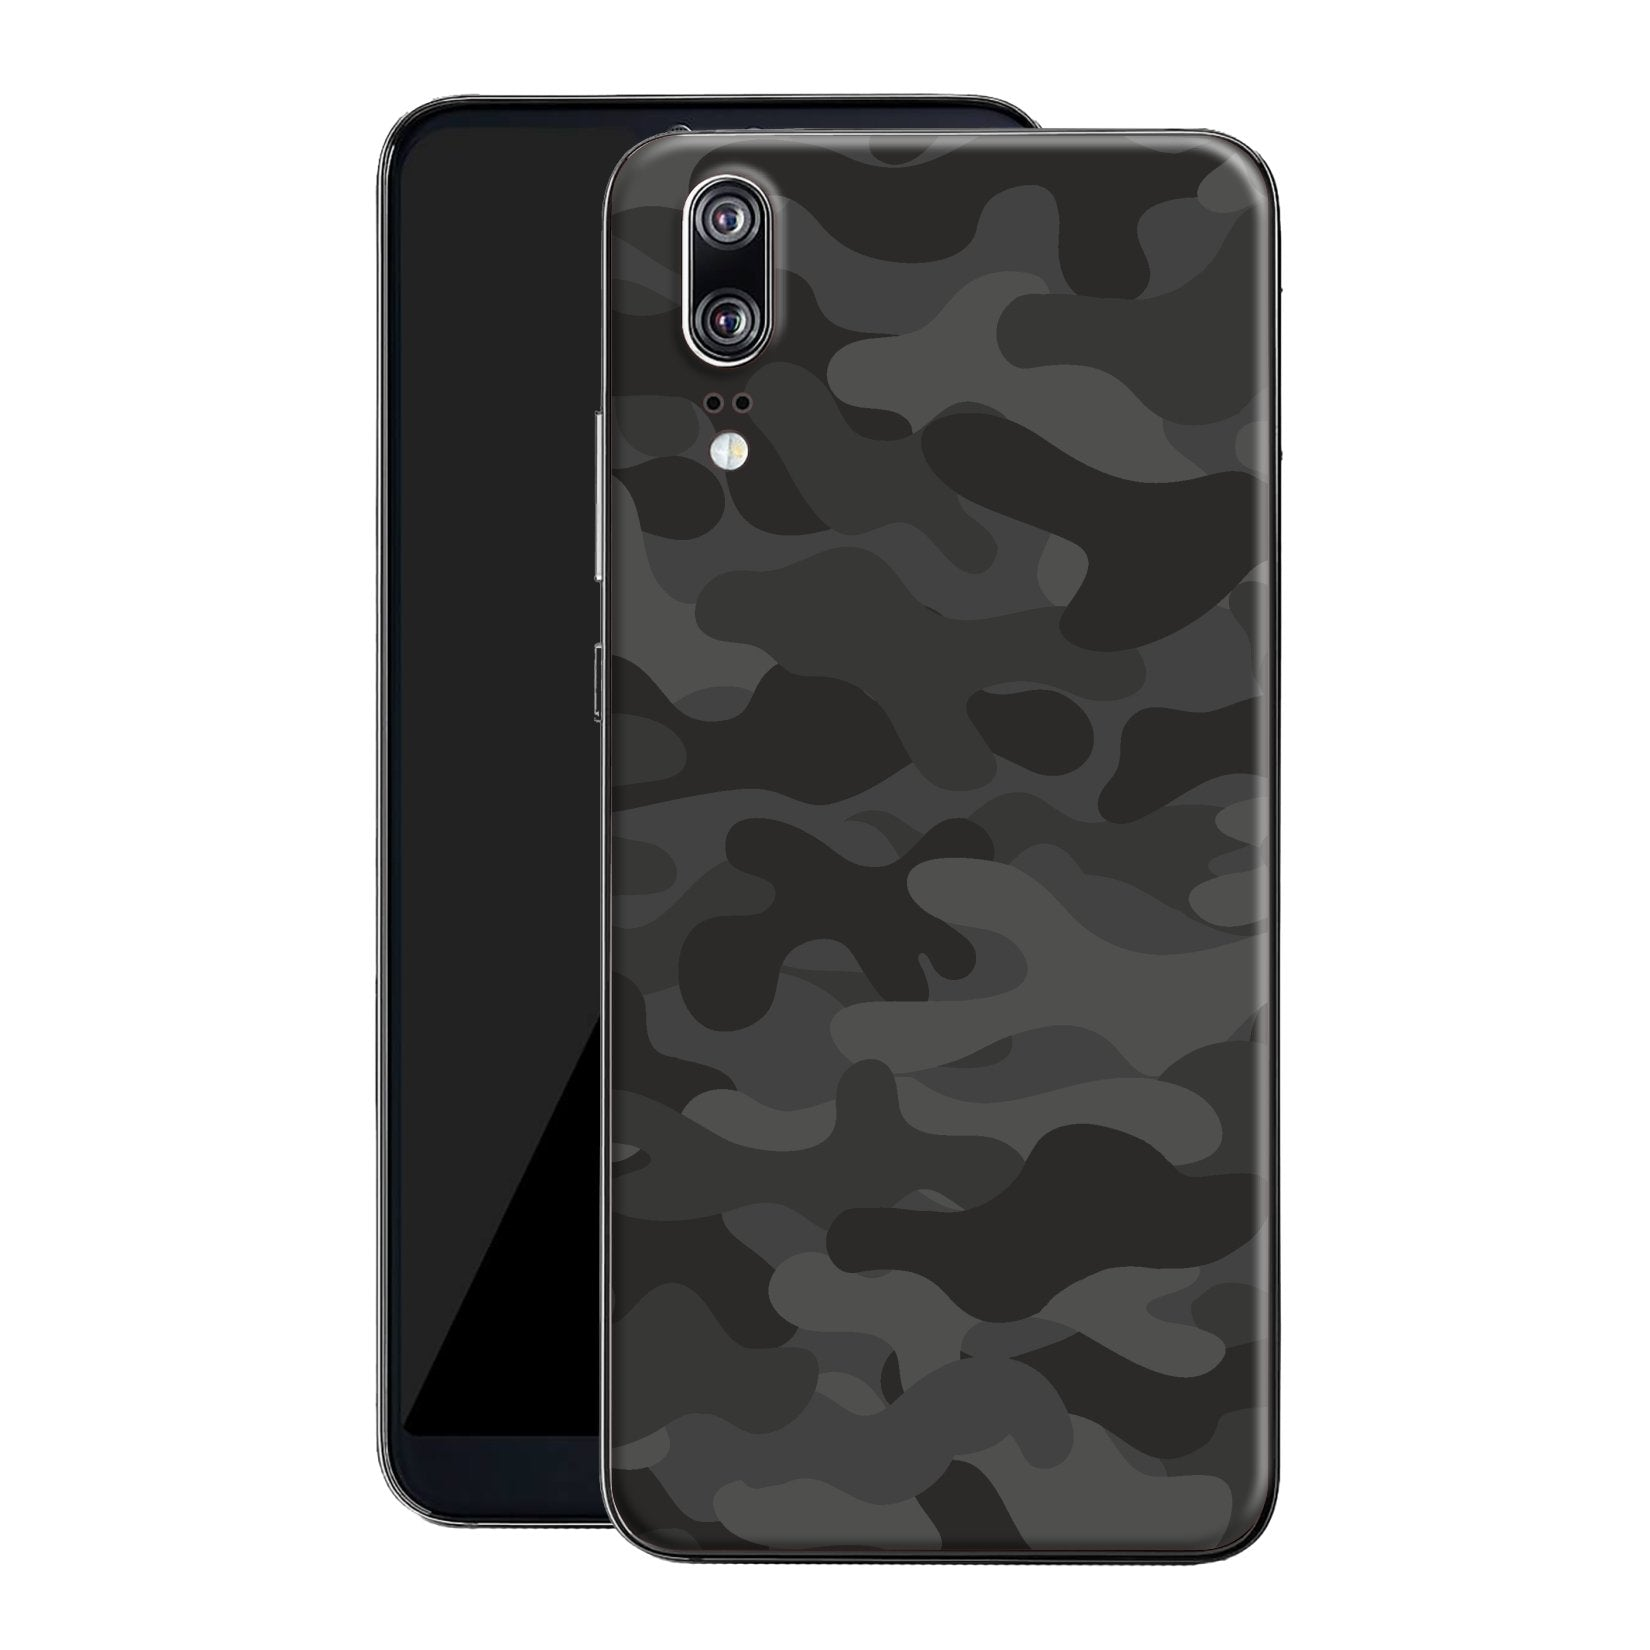 Huawei P20 Print Custom Signature Camouflage Dark Slate Skin Wrap Decal by EasySkinz